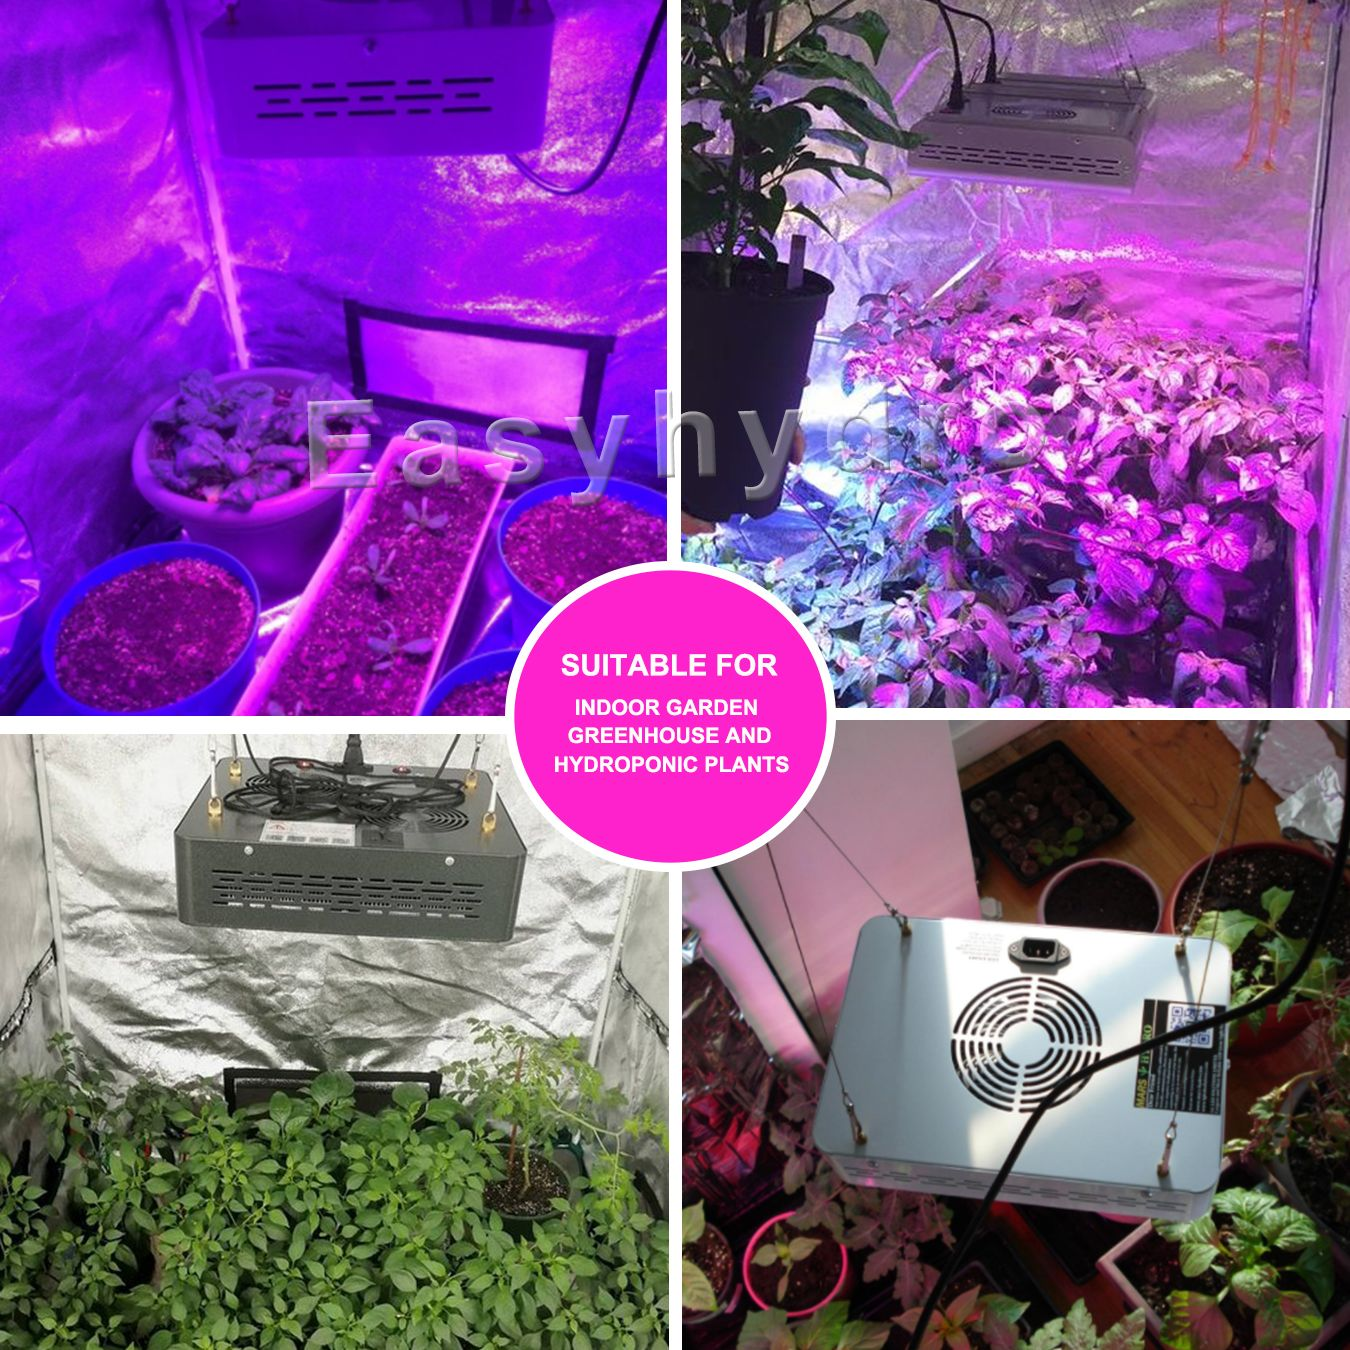 LED grow Light for Pepper hot chilispinach tomato lettuce strawberry etc. indoor vegetable fruit and flower growing. #easyhydro #ledgrowlights # ... & Details about Mars ECO 300W LED Grow Light for Hydroponic 27u0027u0027 Grow ...